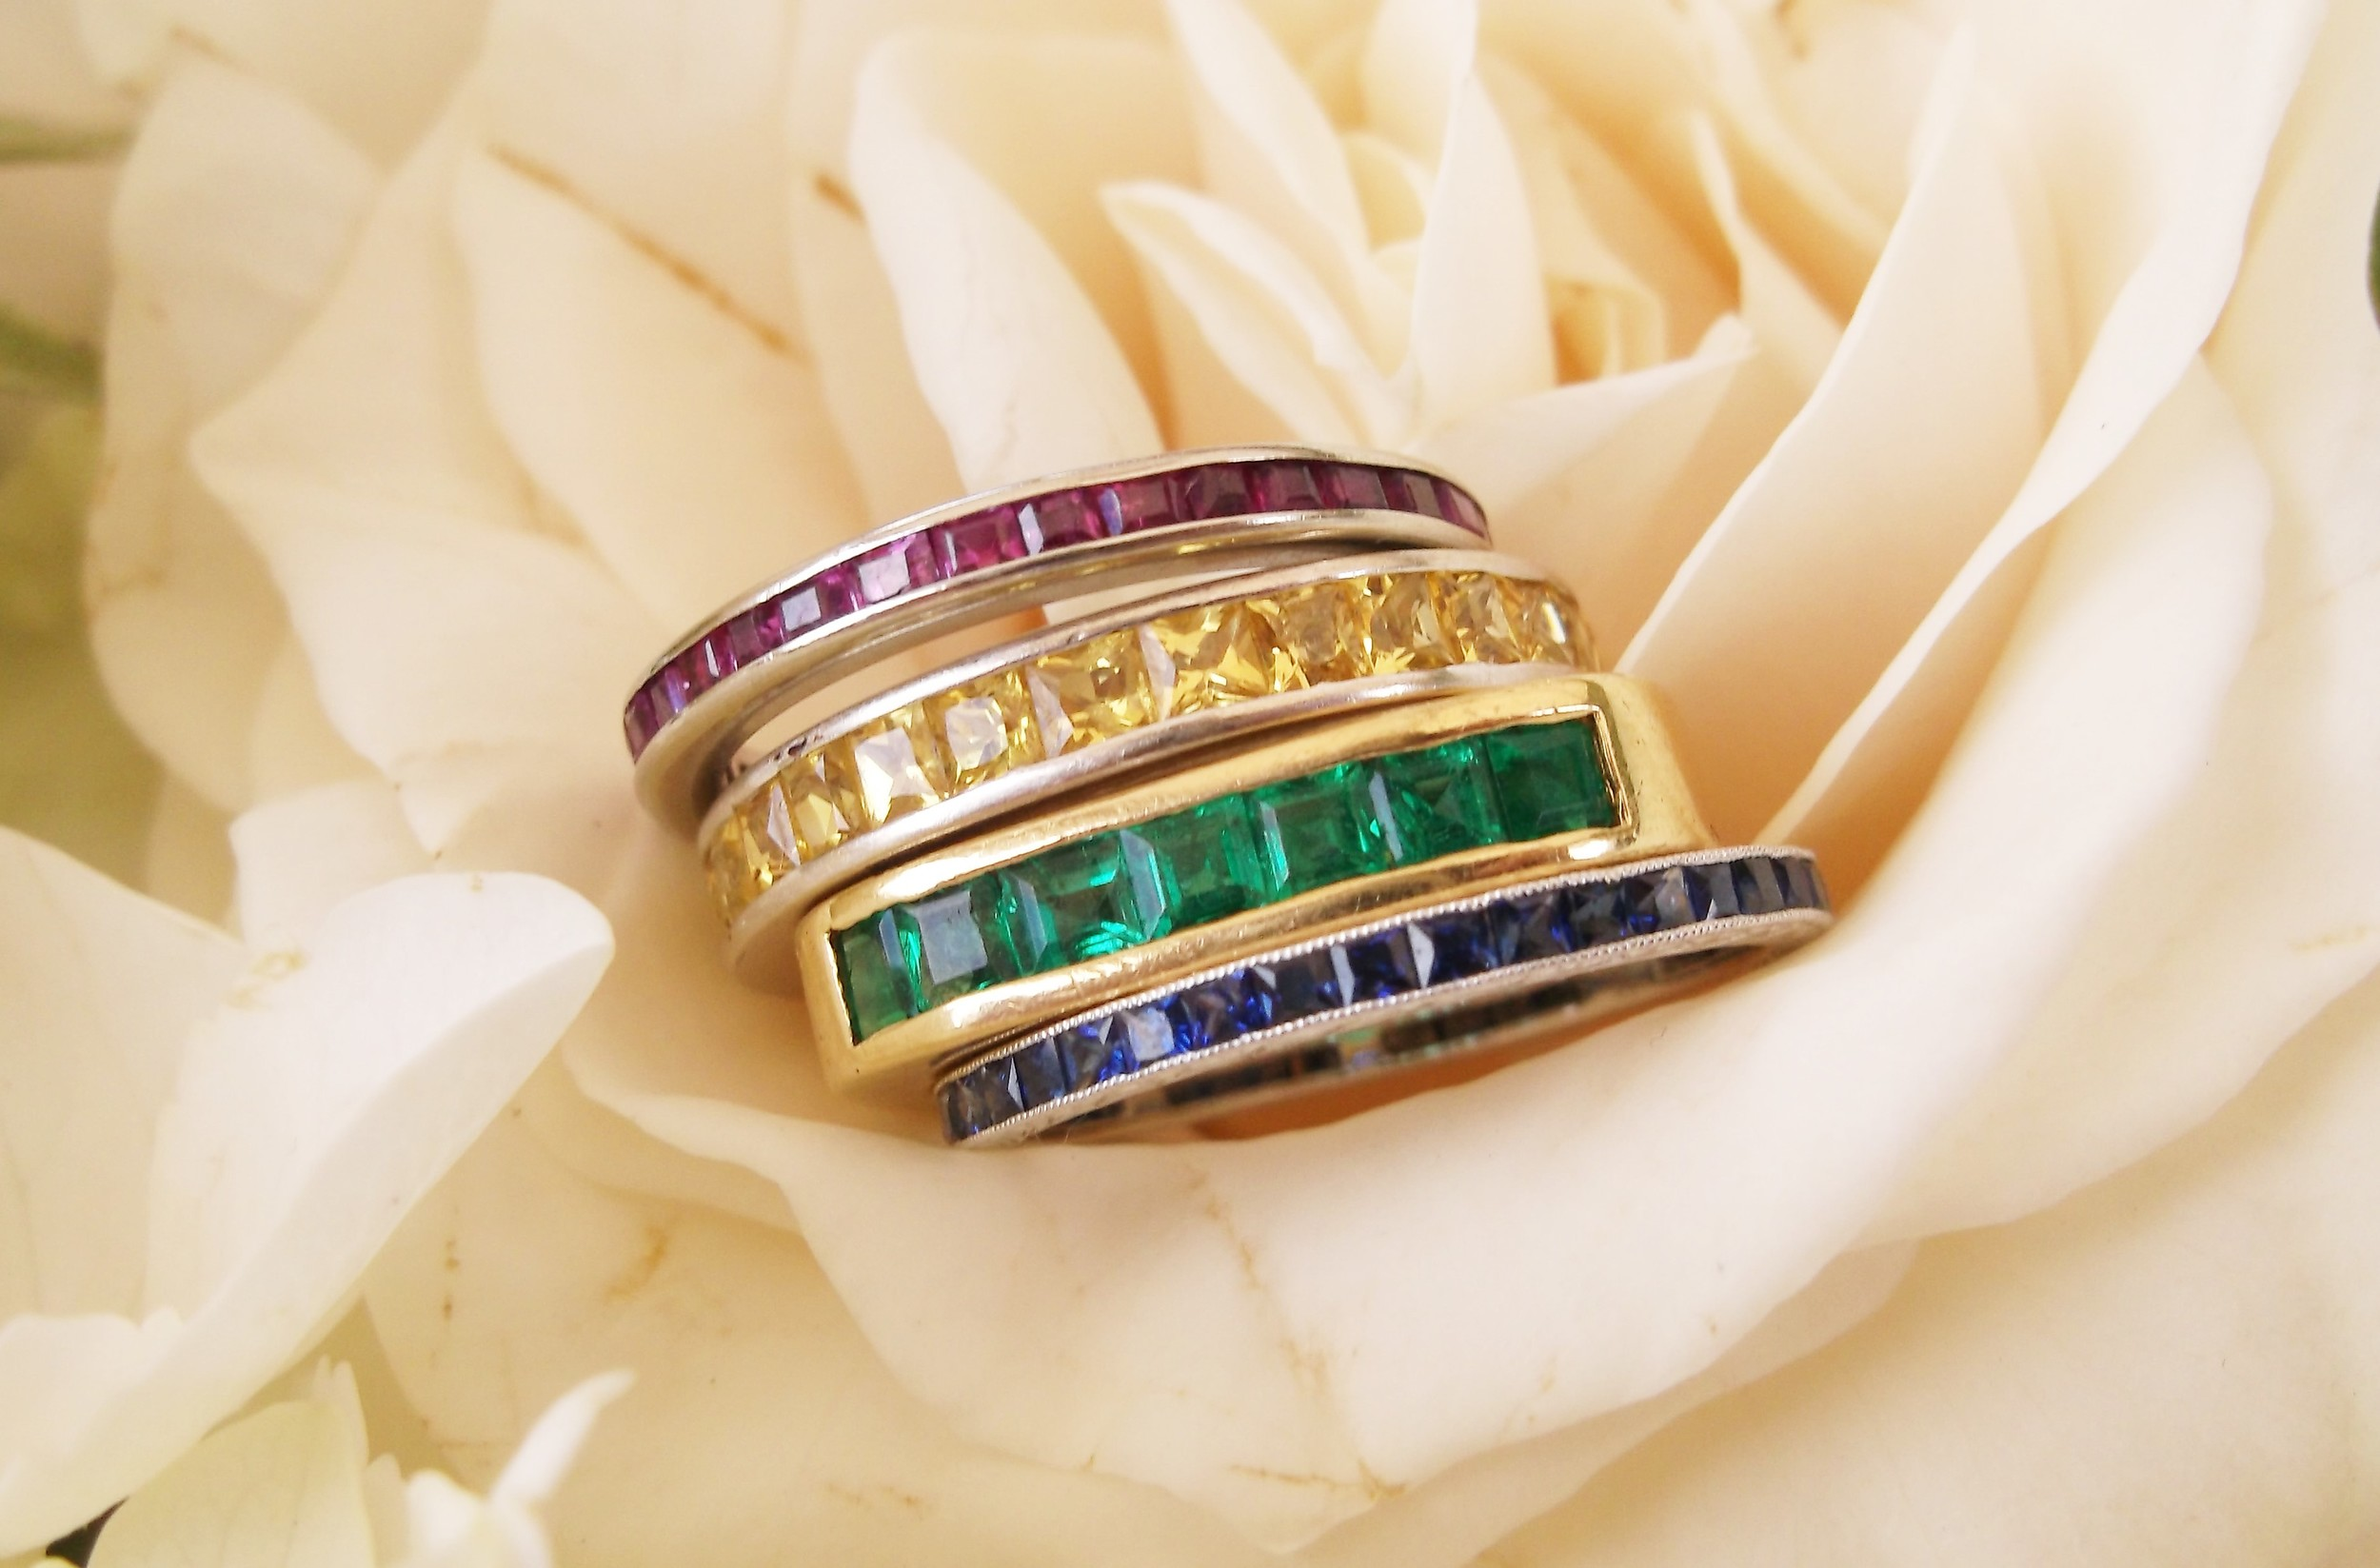 Lovely ruby and platinum, yellow sapphire and white gold, emerald and yellow gold and sapphire and platinum bands.